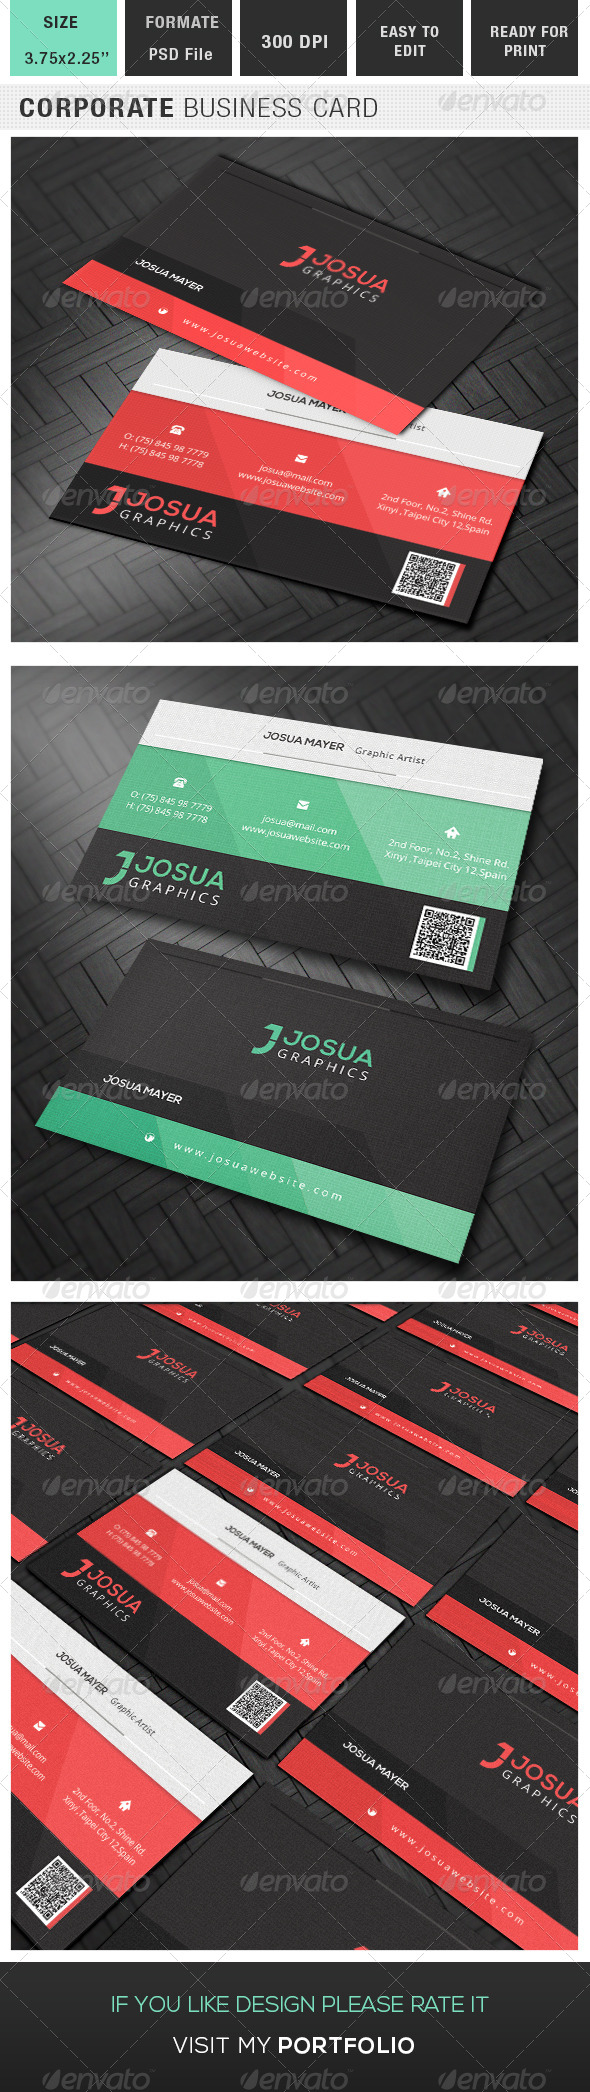 GraphicRiver Corporate Business Card 8245947